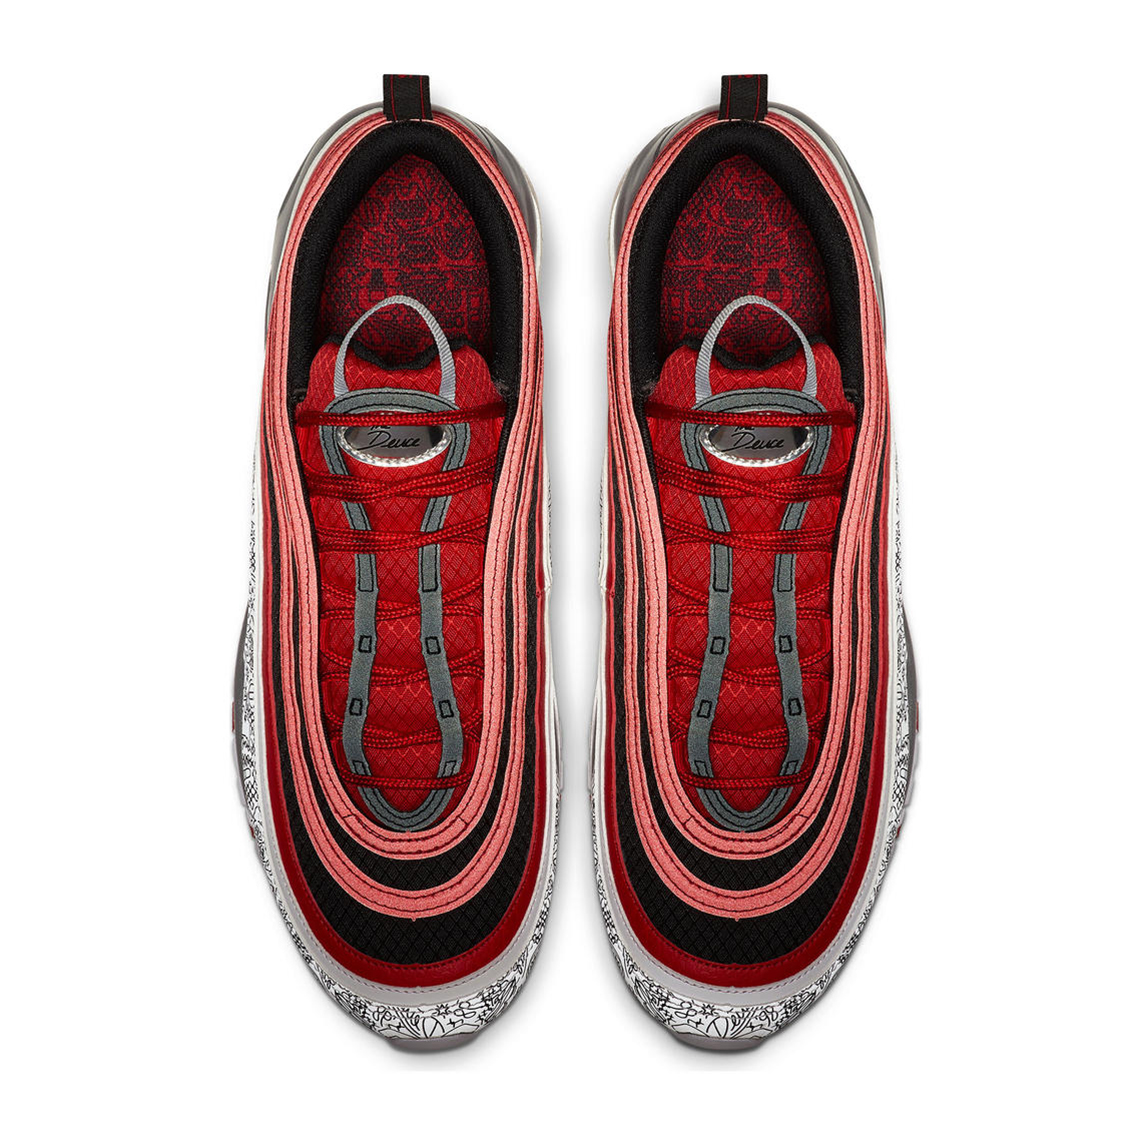 Now Available: Jayson Tatum x Nike Air Max 97